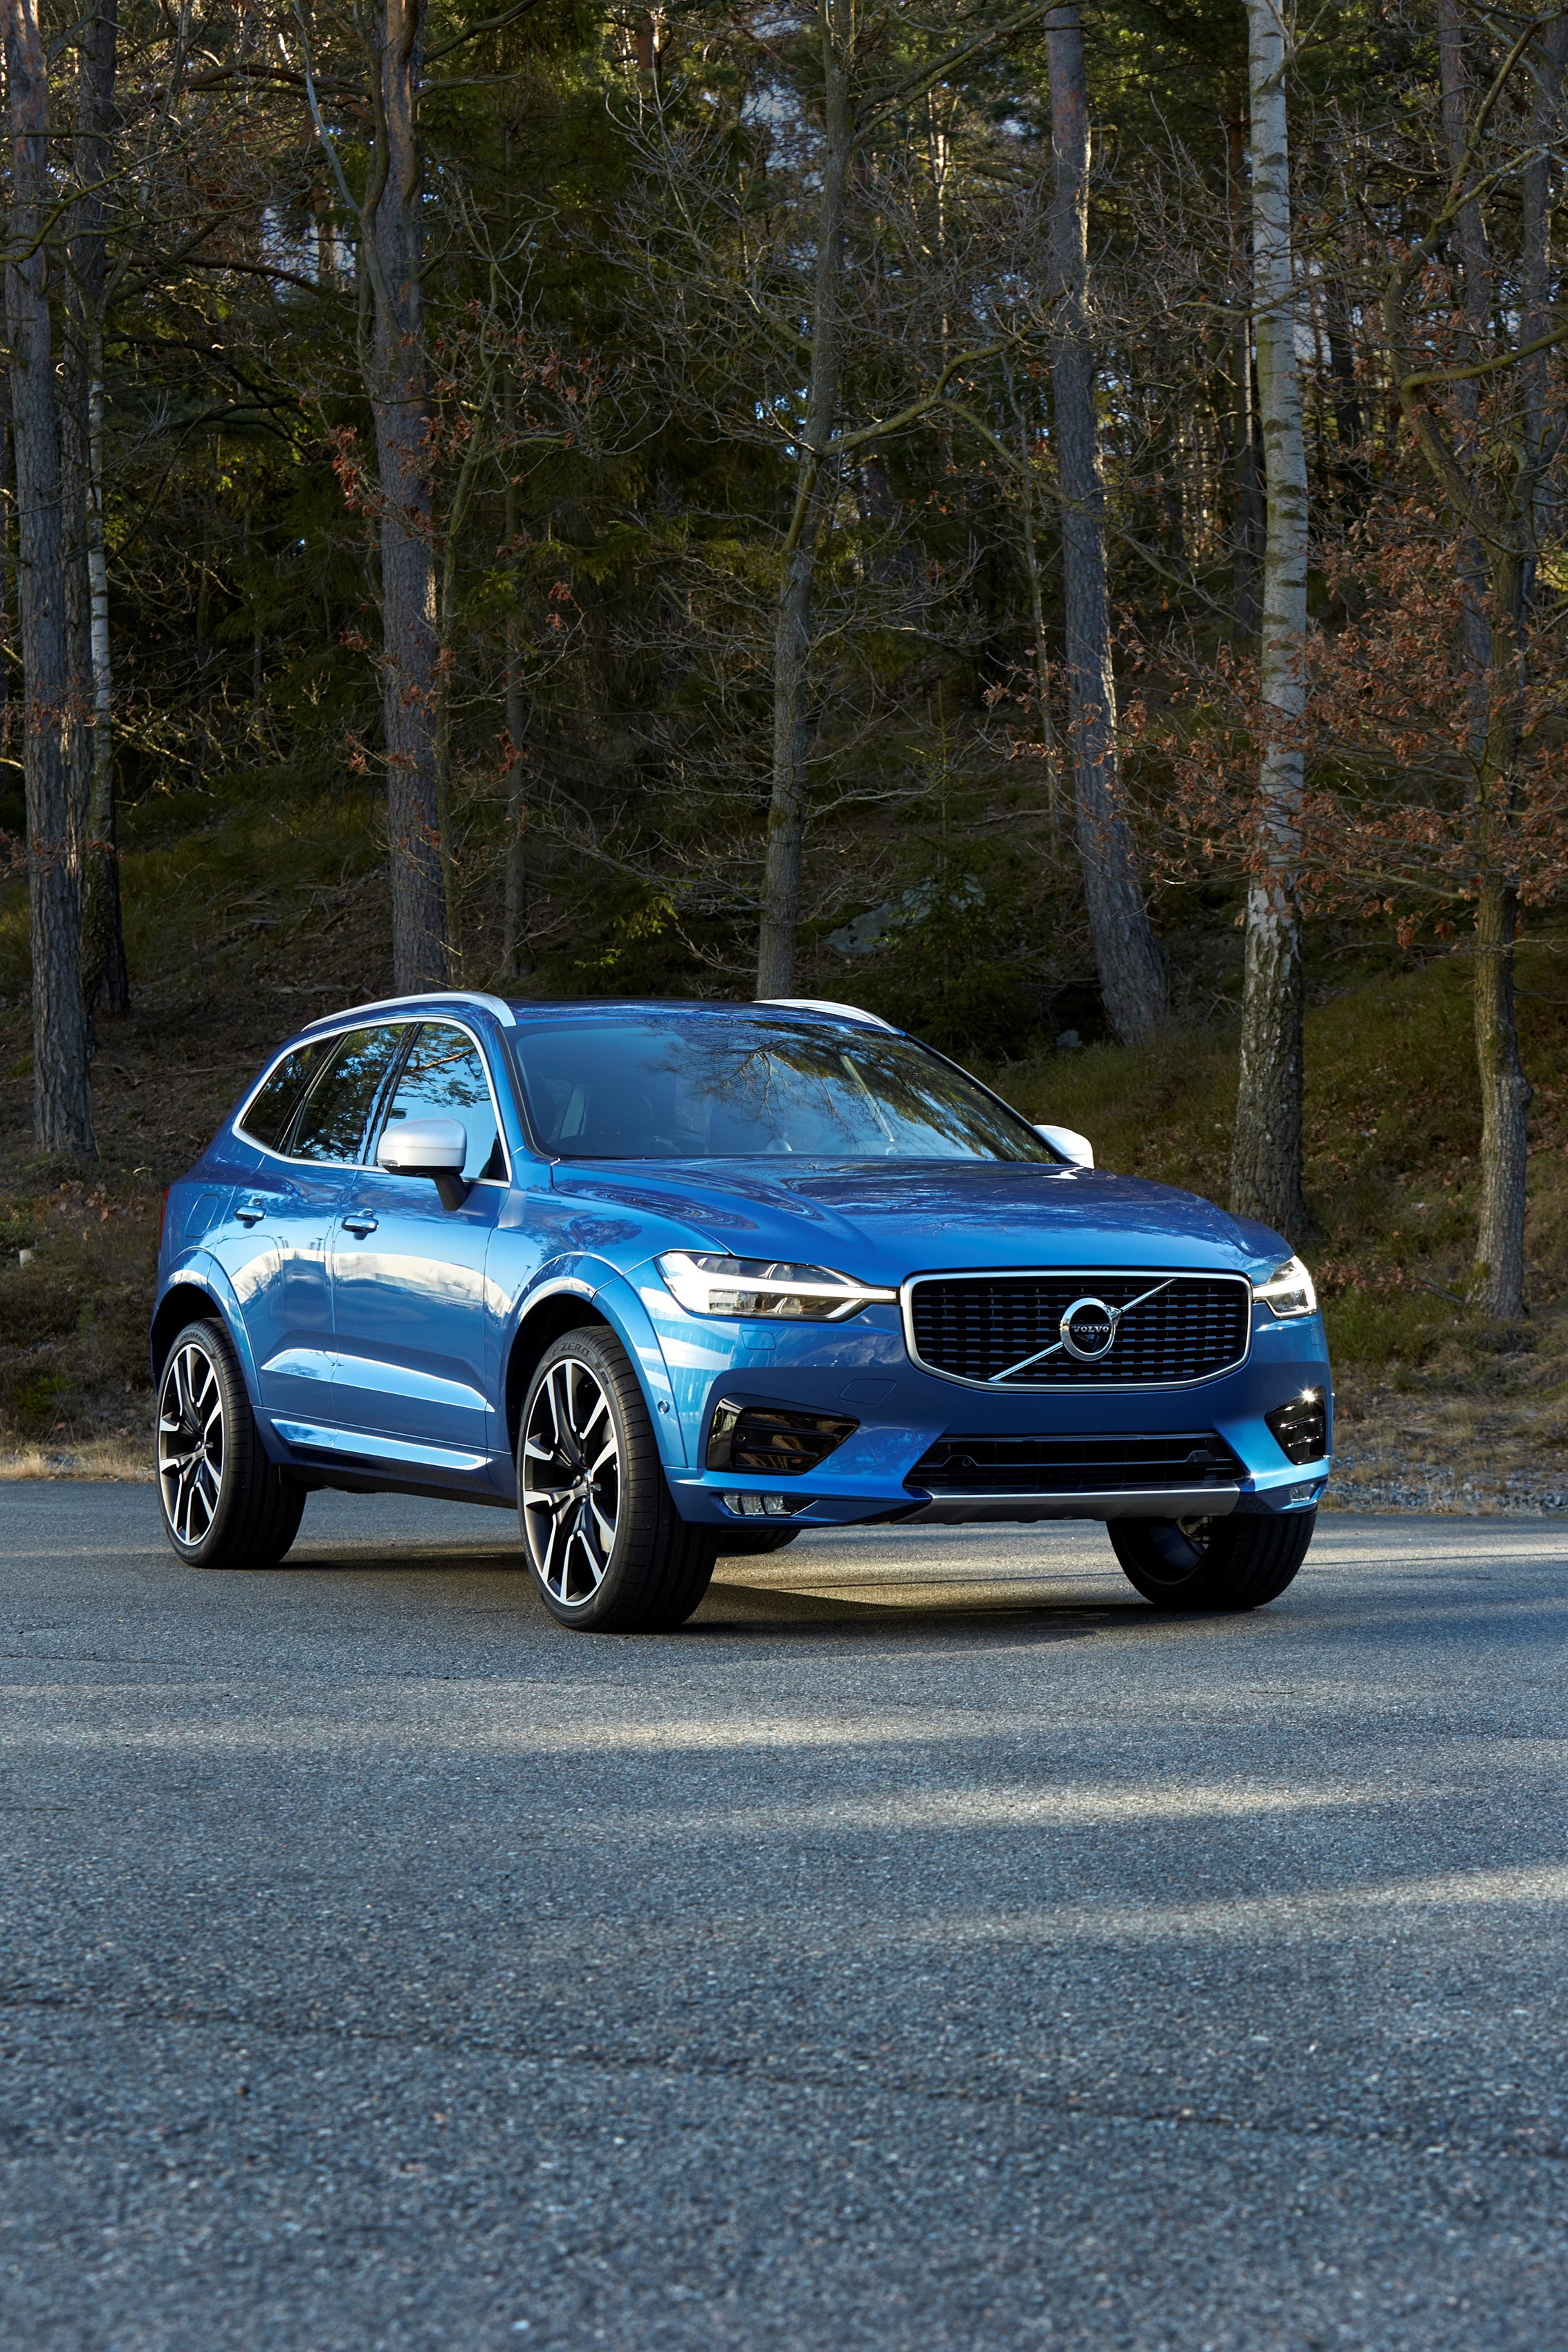 2018 volvo xc60 unveiled 407 hp t8 plug in hybrid image 625877. Black Bedroom Furniture Sets. Home Design Ideas